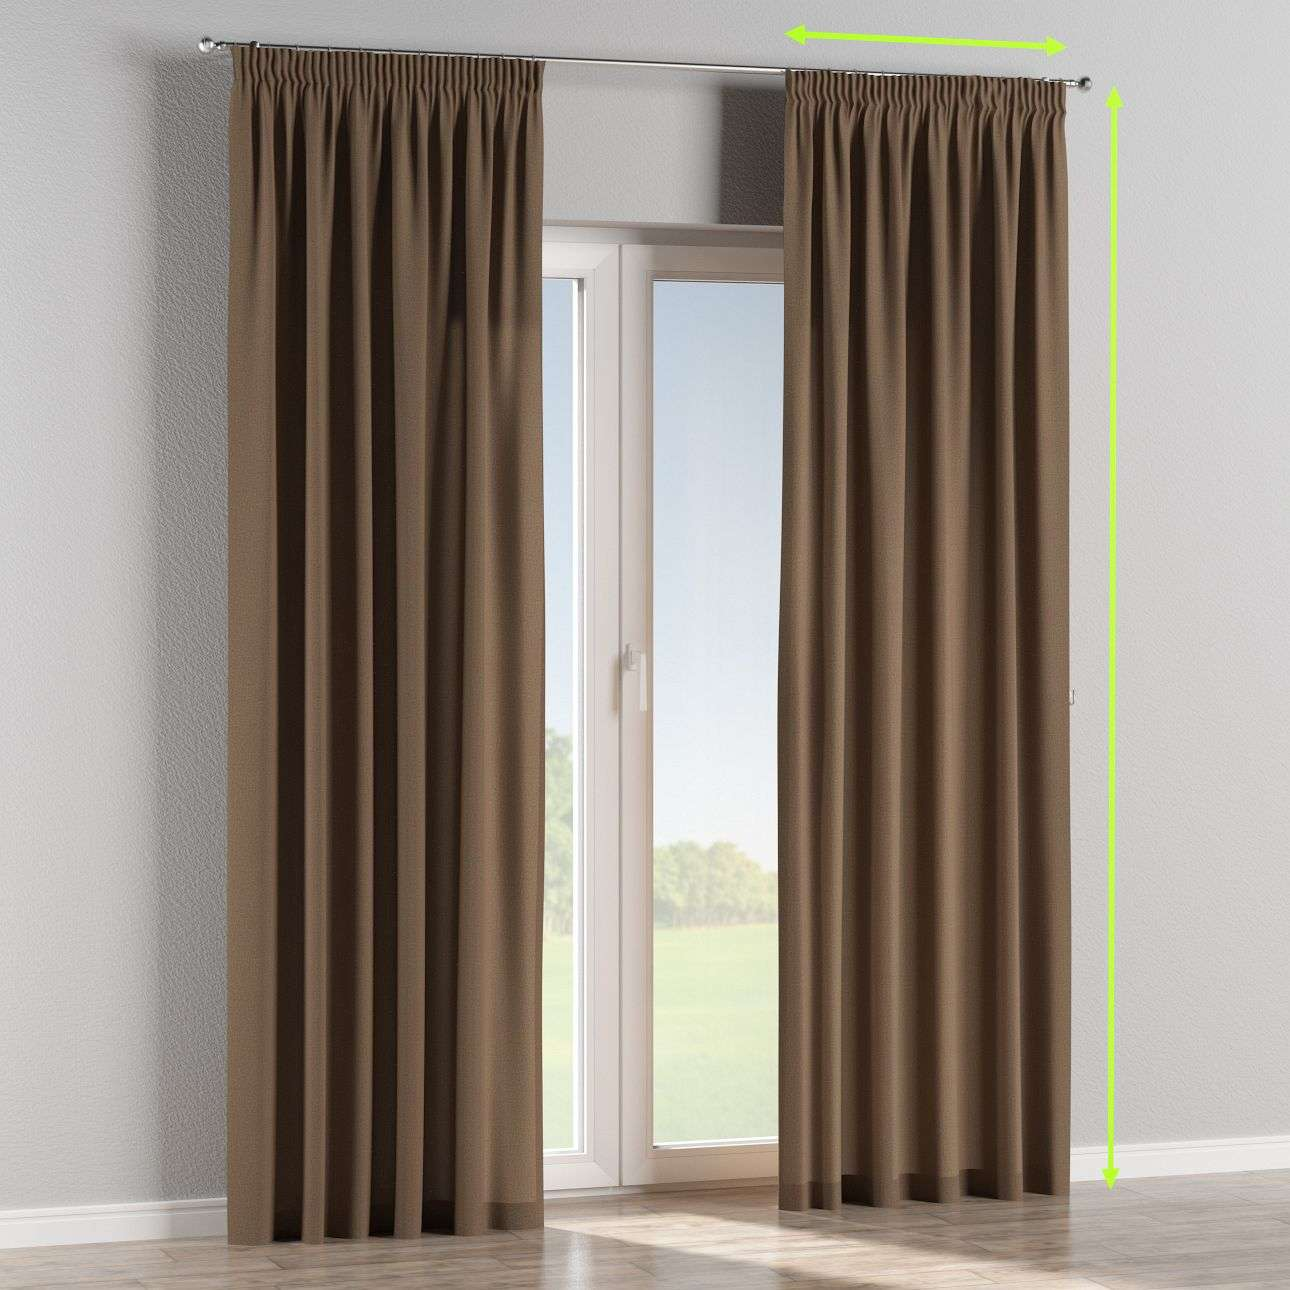 Pencil pleat lined curtains in collection Edinburgh, fabric: 115-85